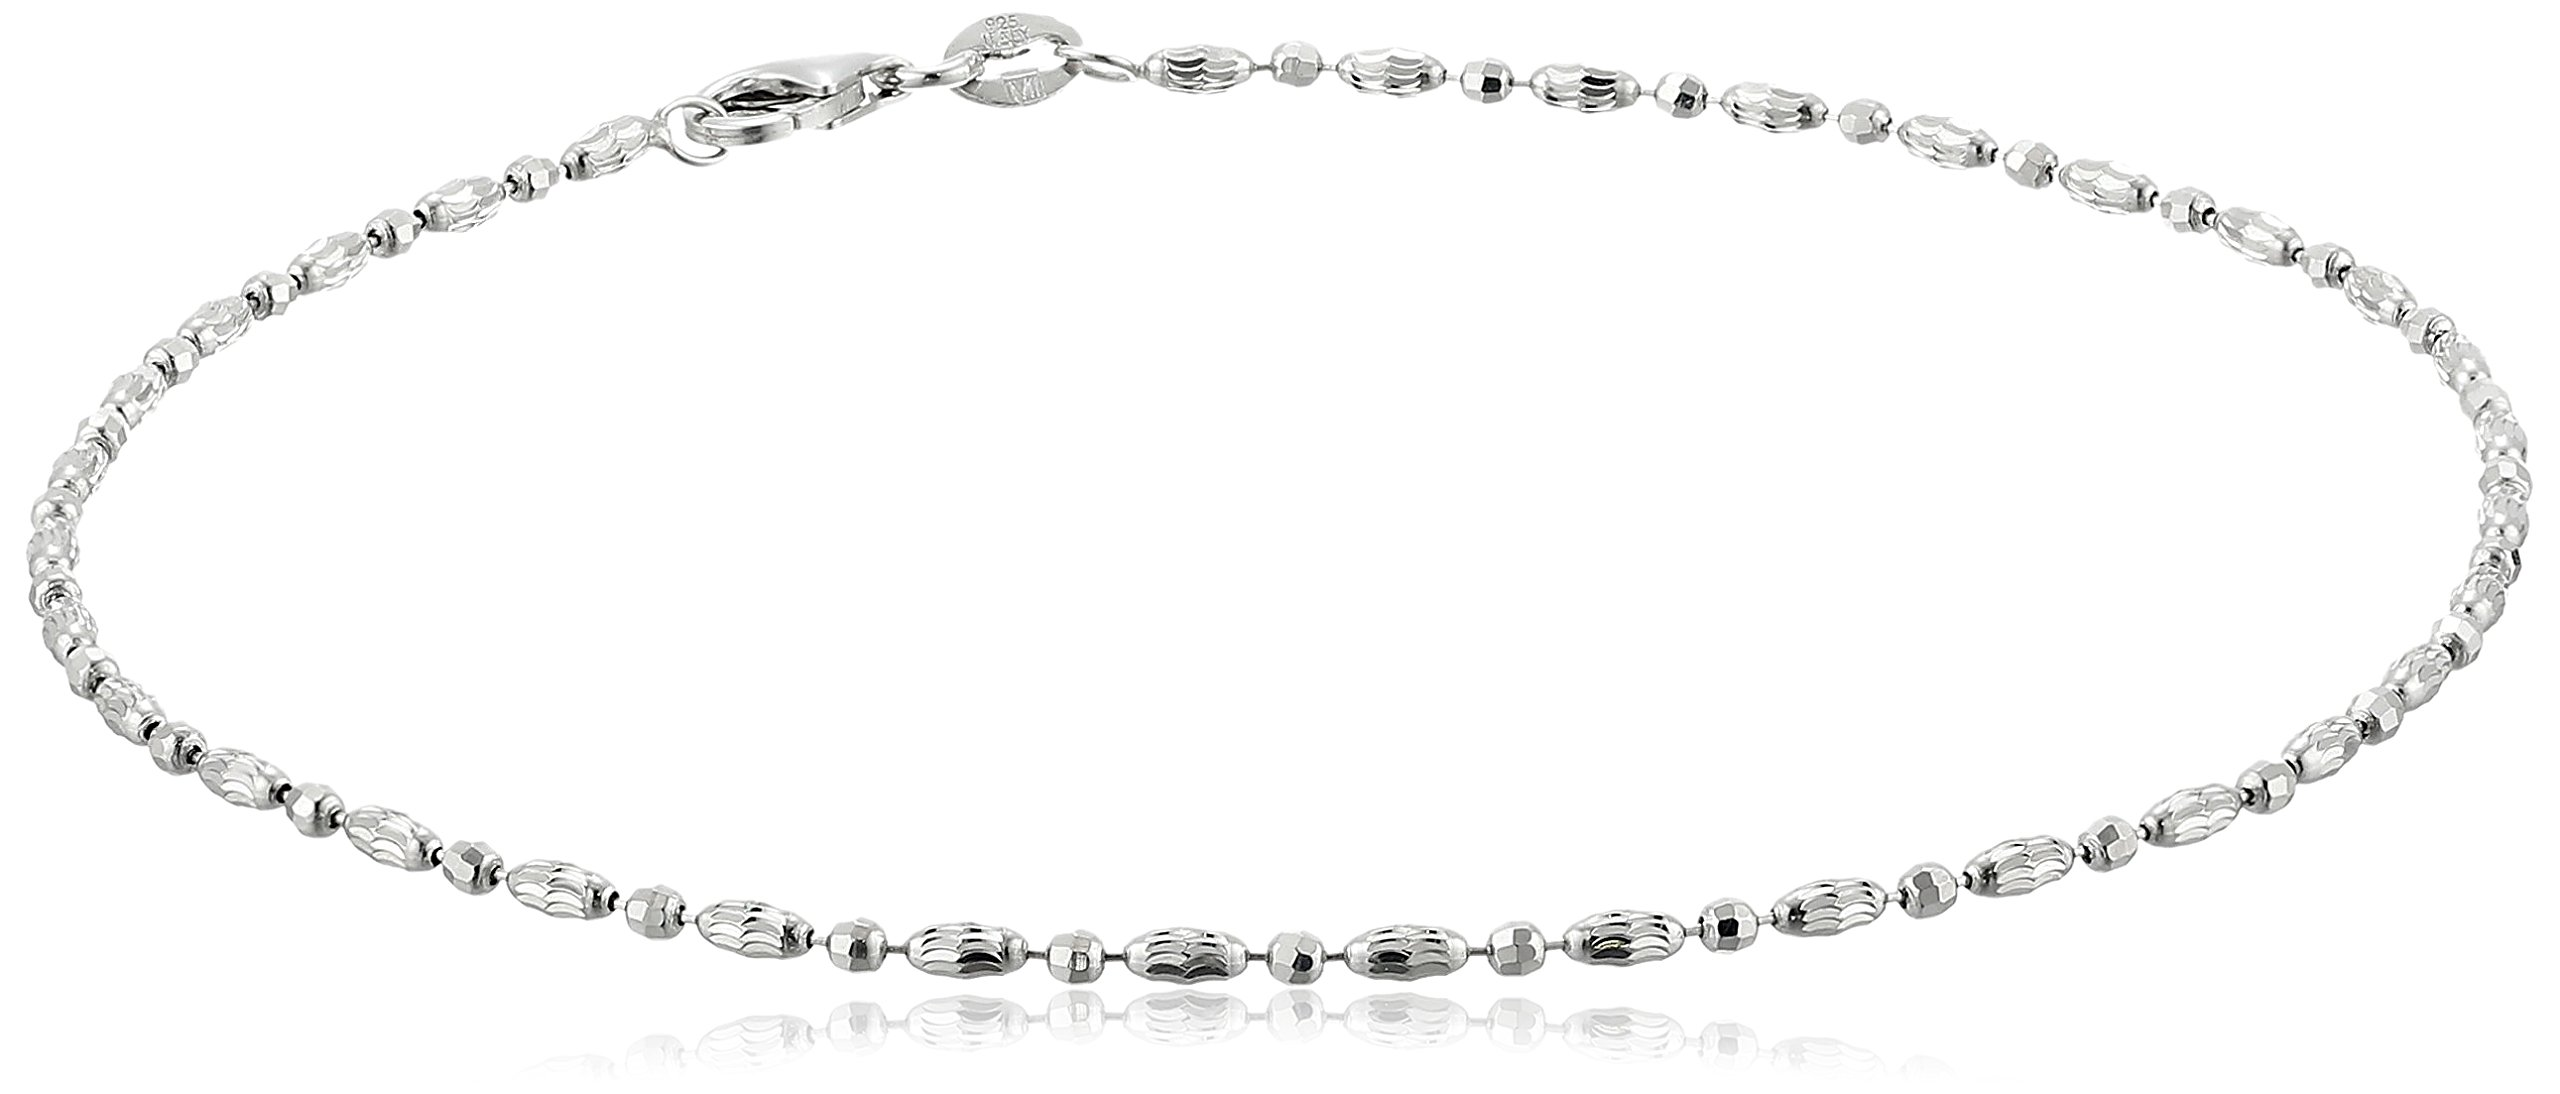 Italian Sterling Silver Rhodium Plated Diamond Cut Oval and Round Beads Mezzaluna Chain Ankle Bracelet, 9''